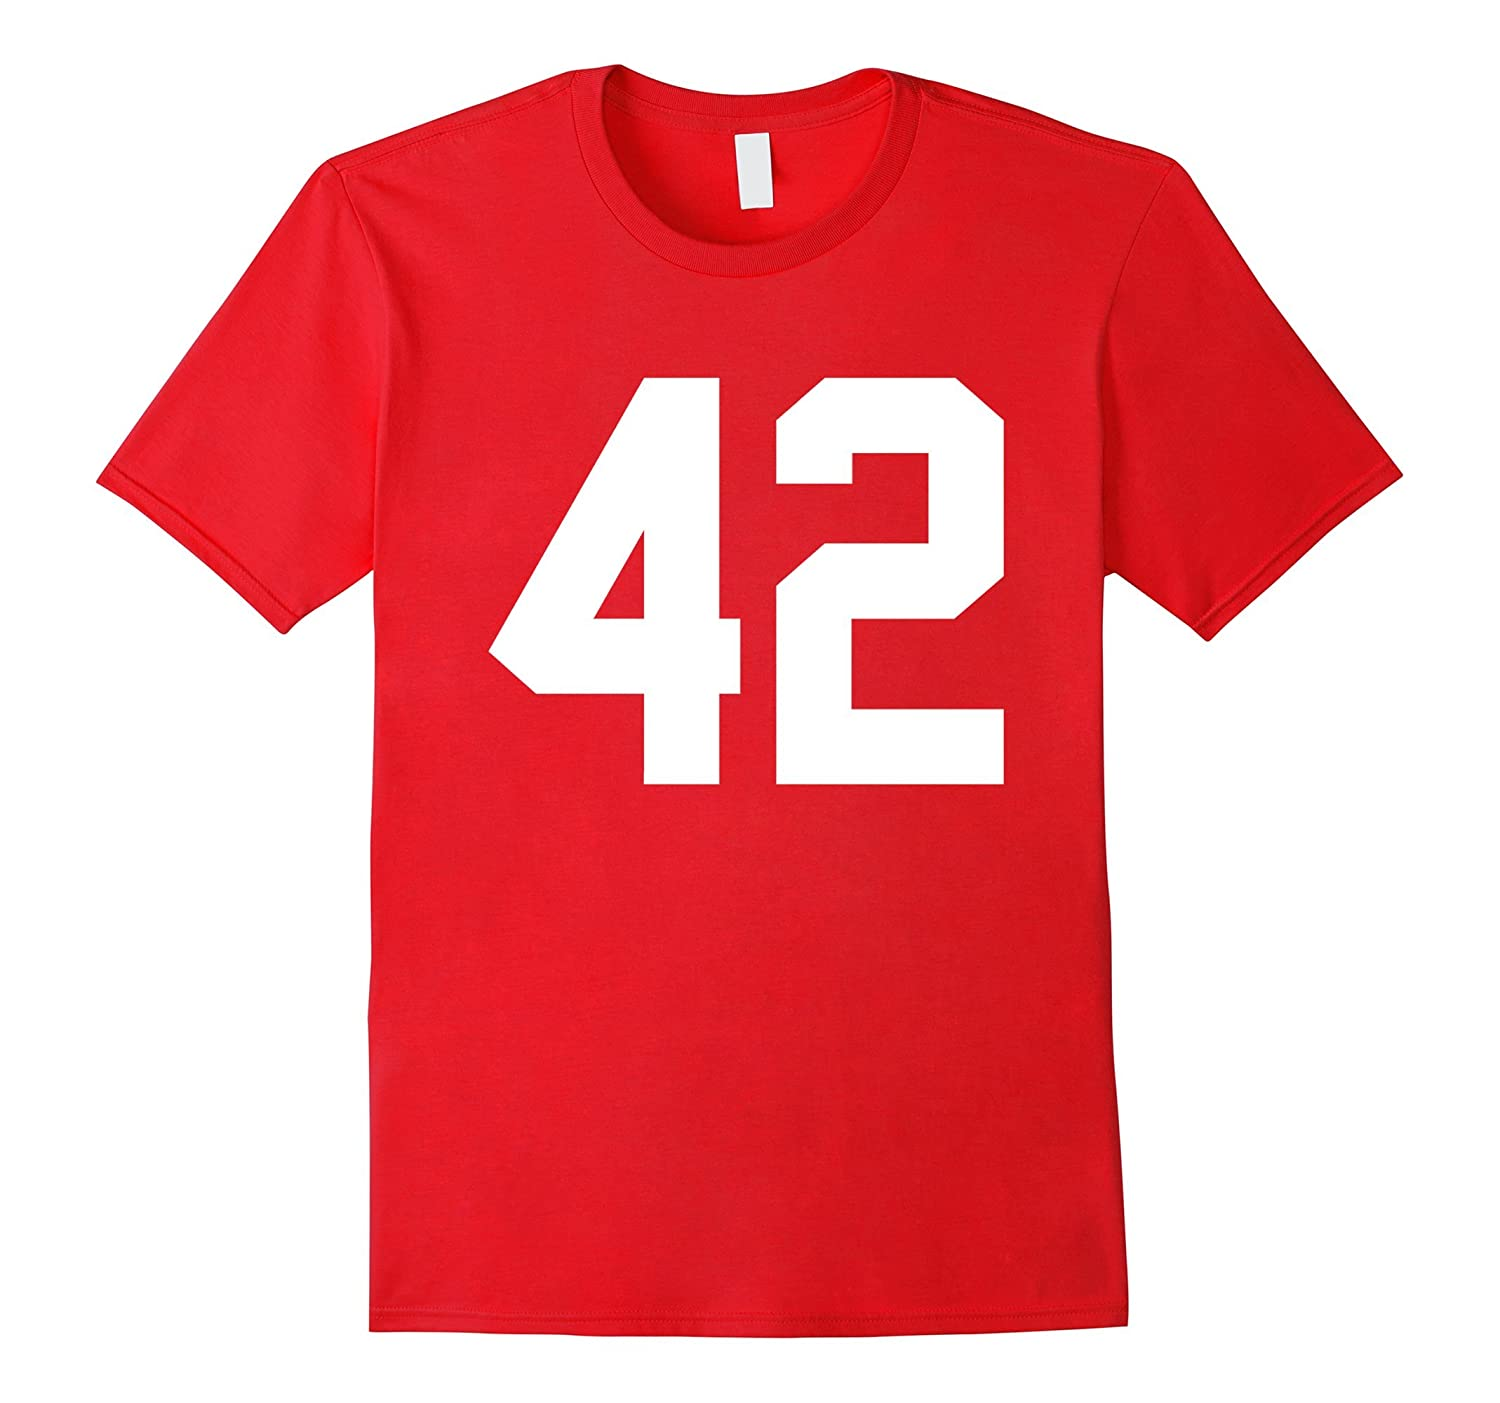 #42 Team Sports Jersey Number Front & Back Player / Fan Tee-TH